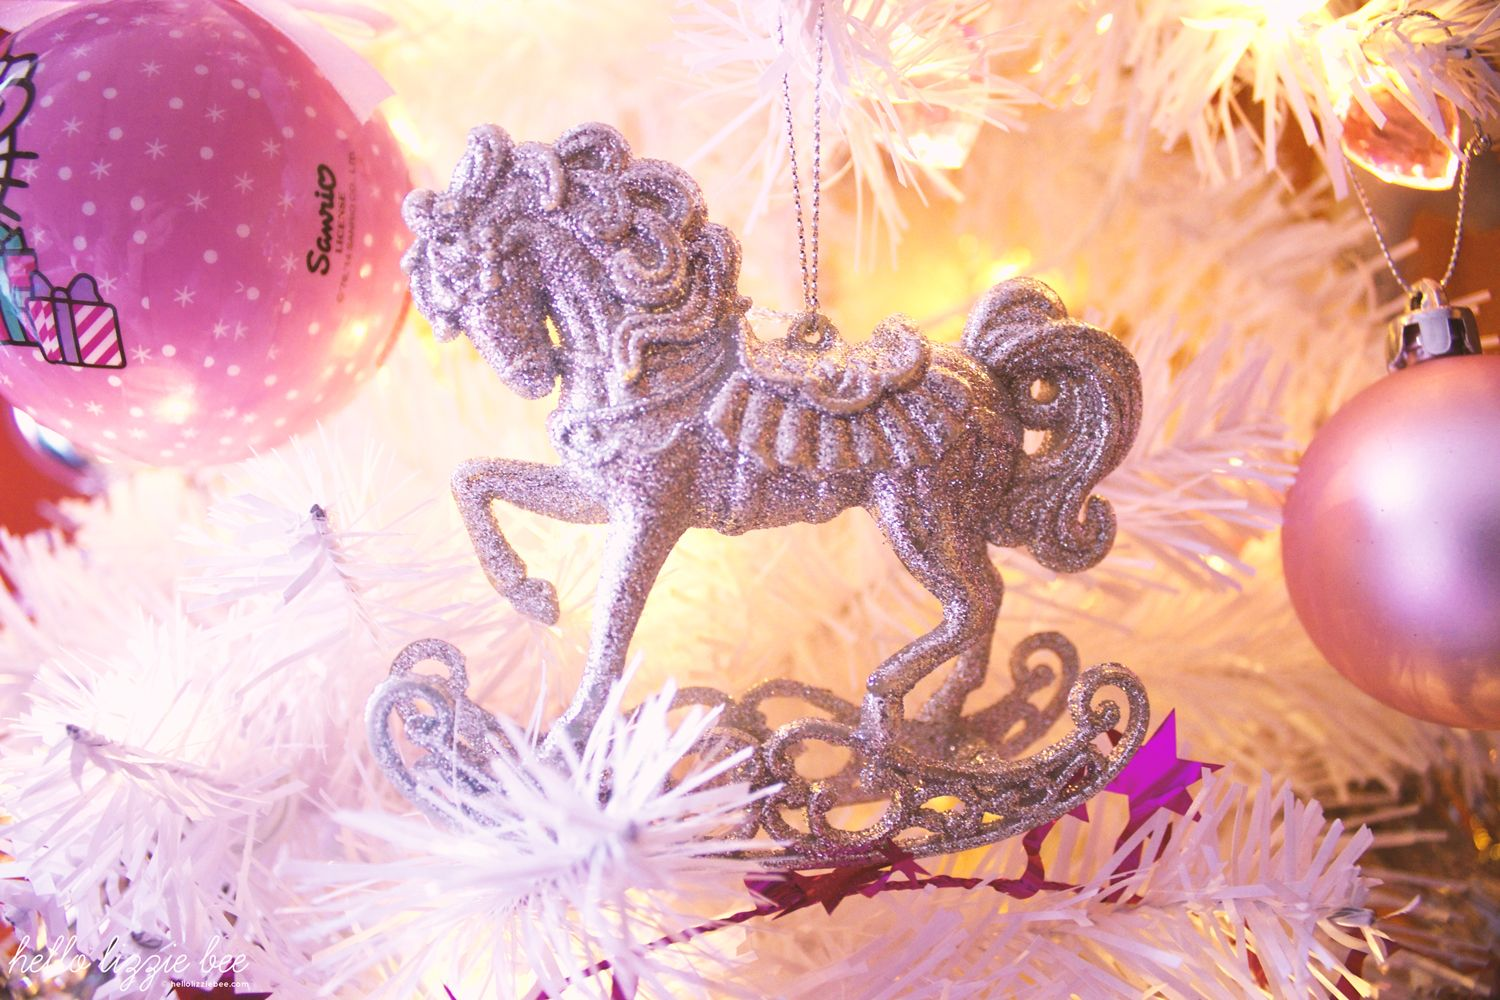 pink christmas decorations, rocking horse